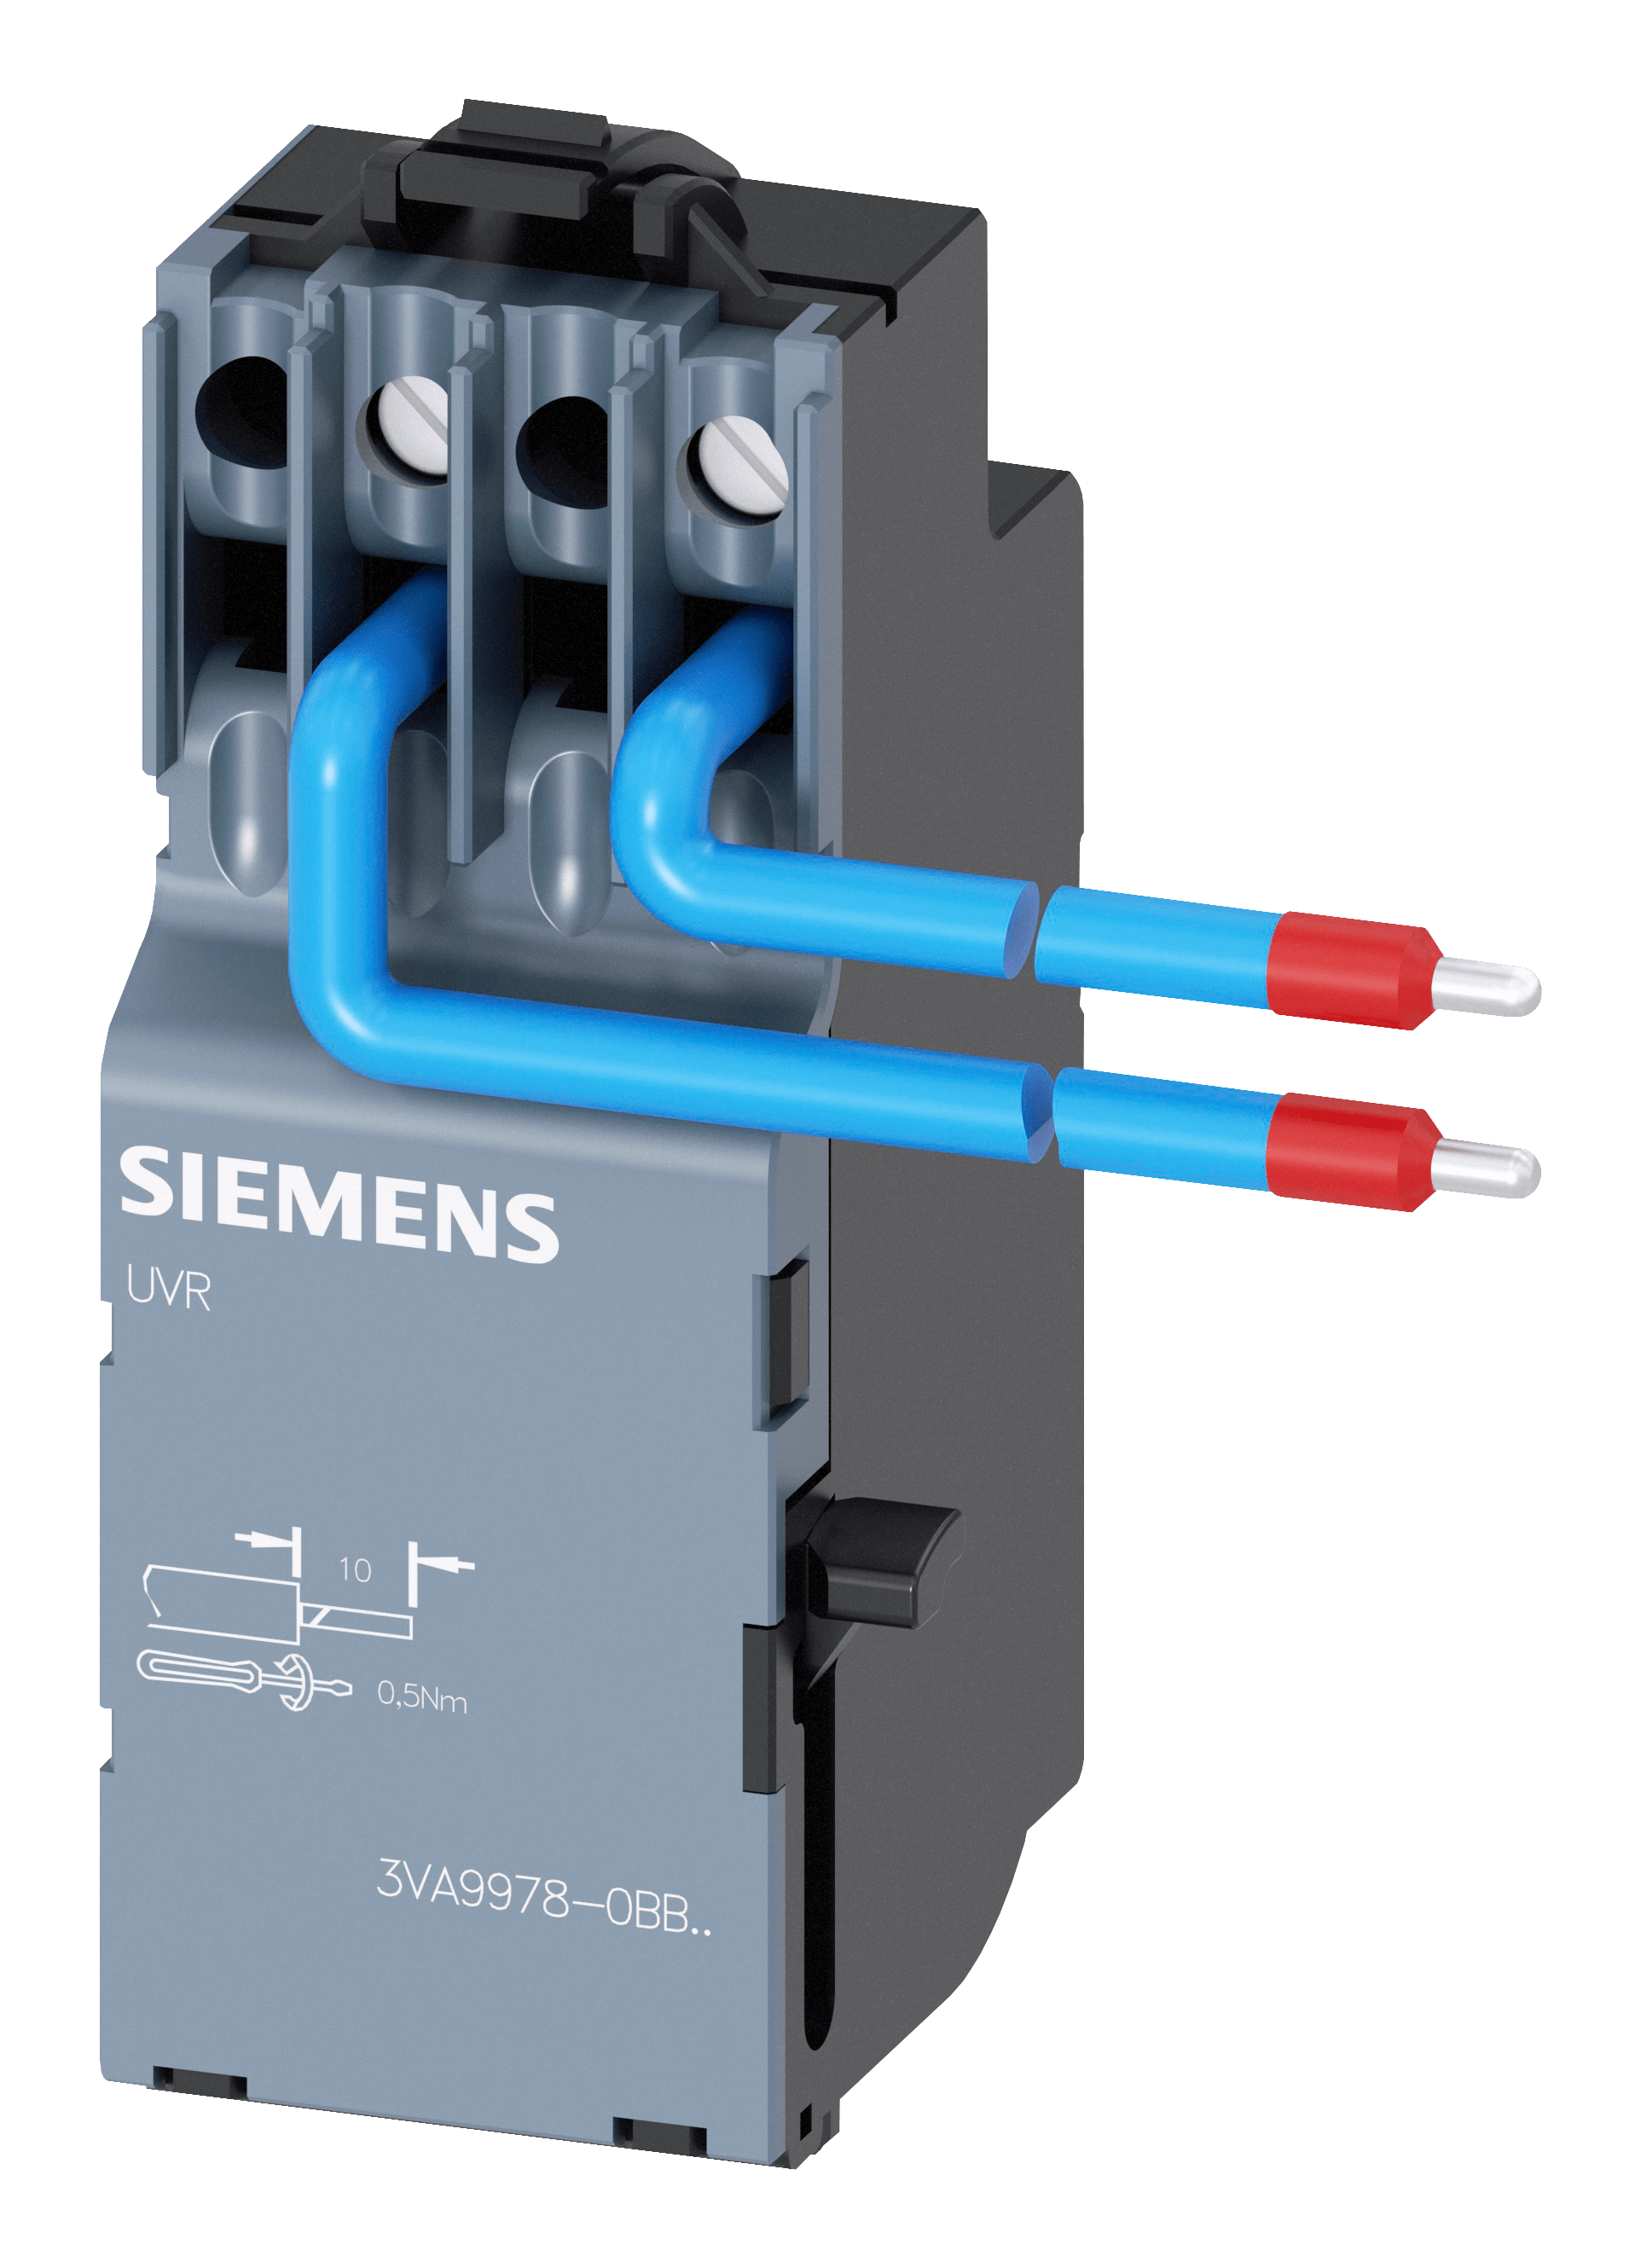 Siemens 3VA Molded Case Circuit Breakers | Steiner Electric